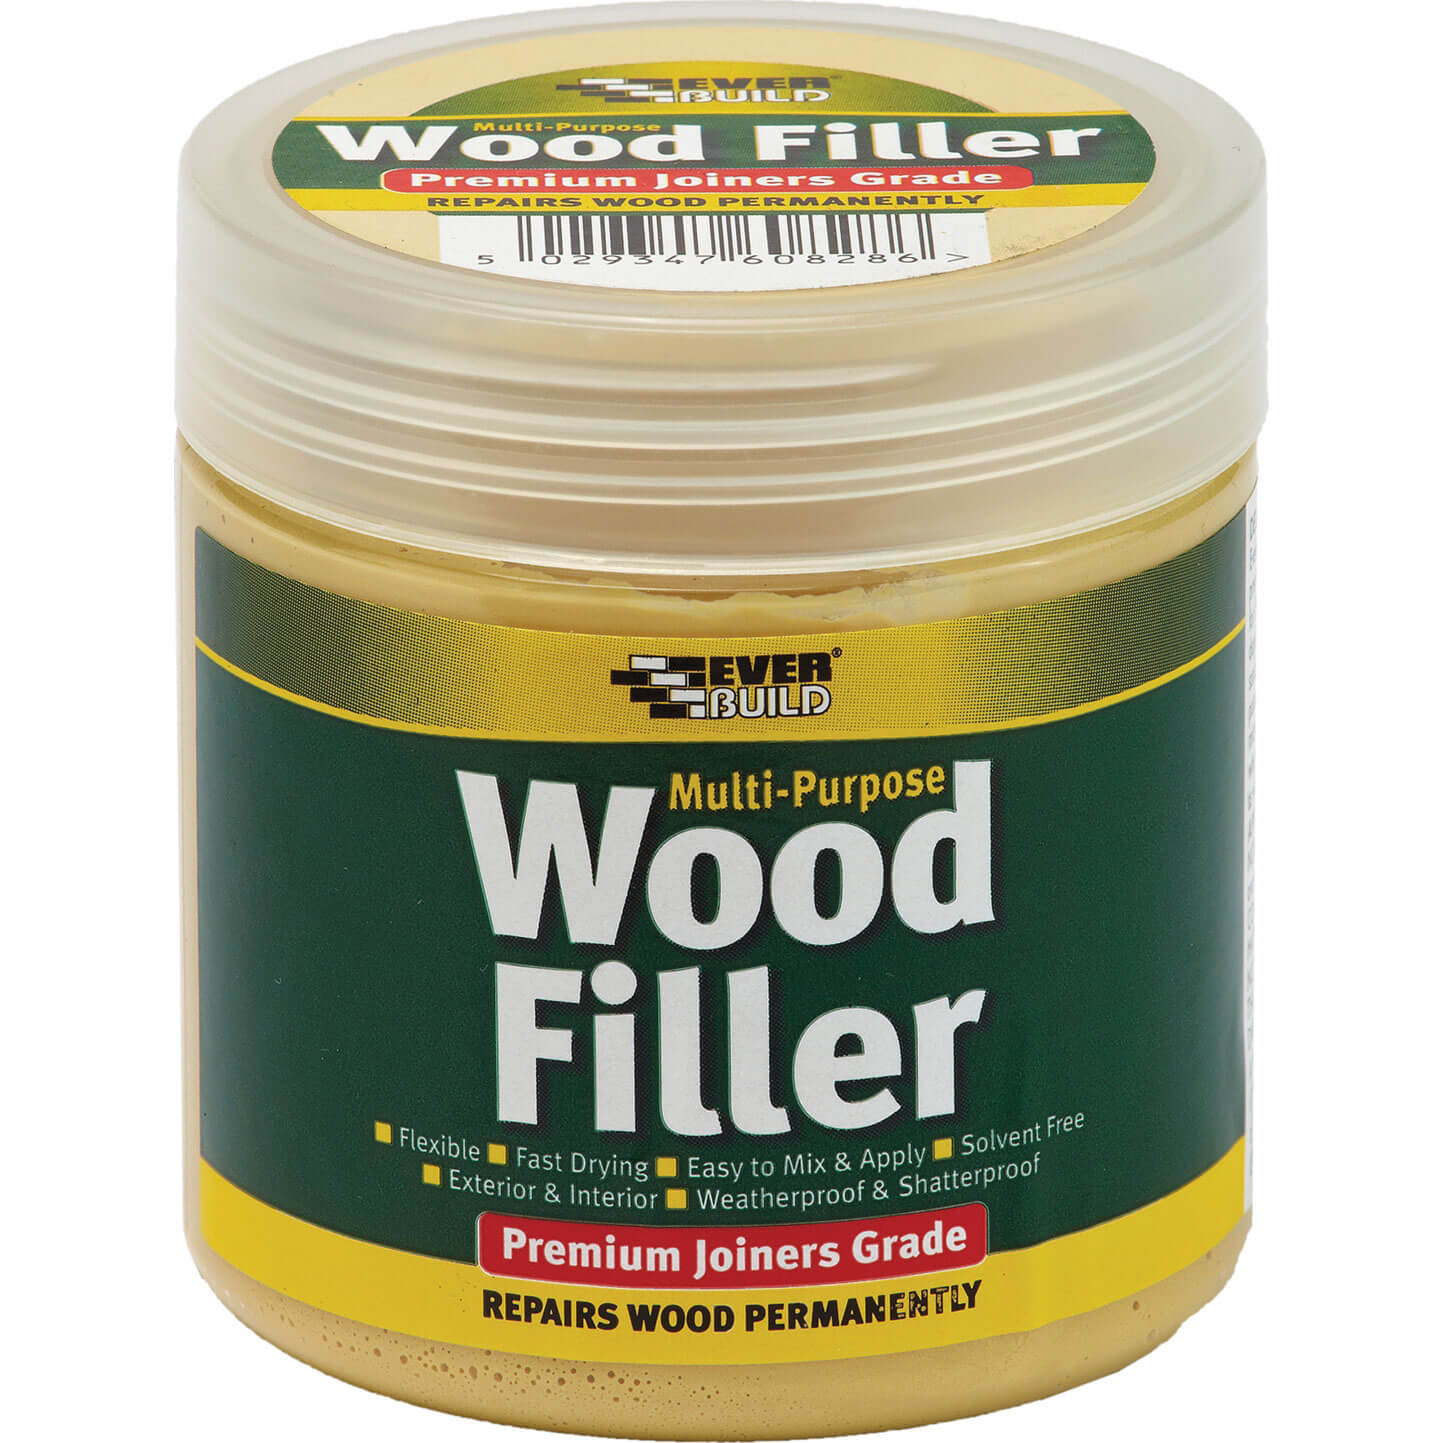 Tooled Up/Sealants & Adhesives/Fillers/Everbuild Multi Purpose Premium Joiners Grade Wood Filler Light Oak 250ml